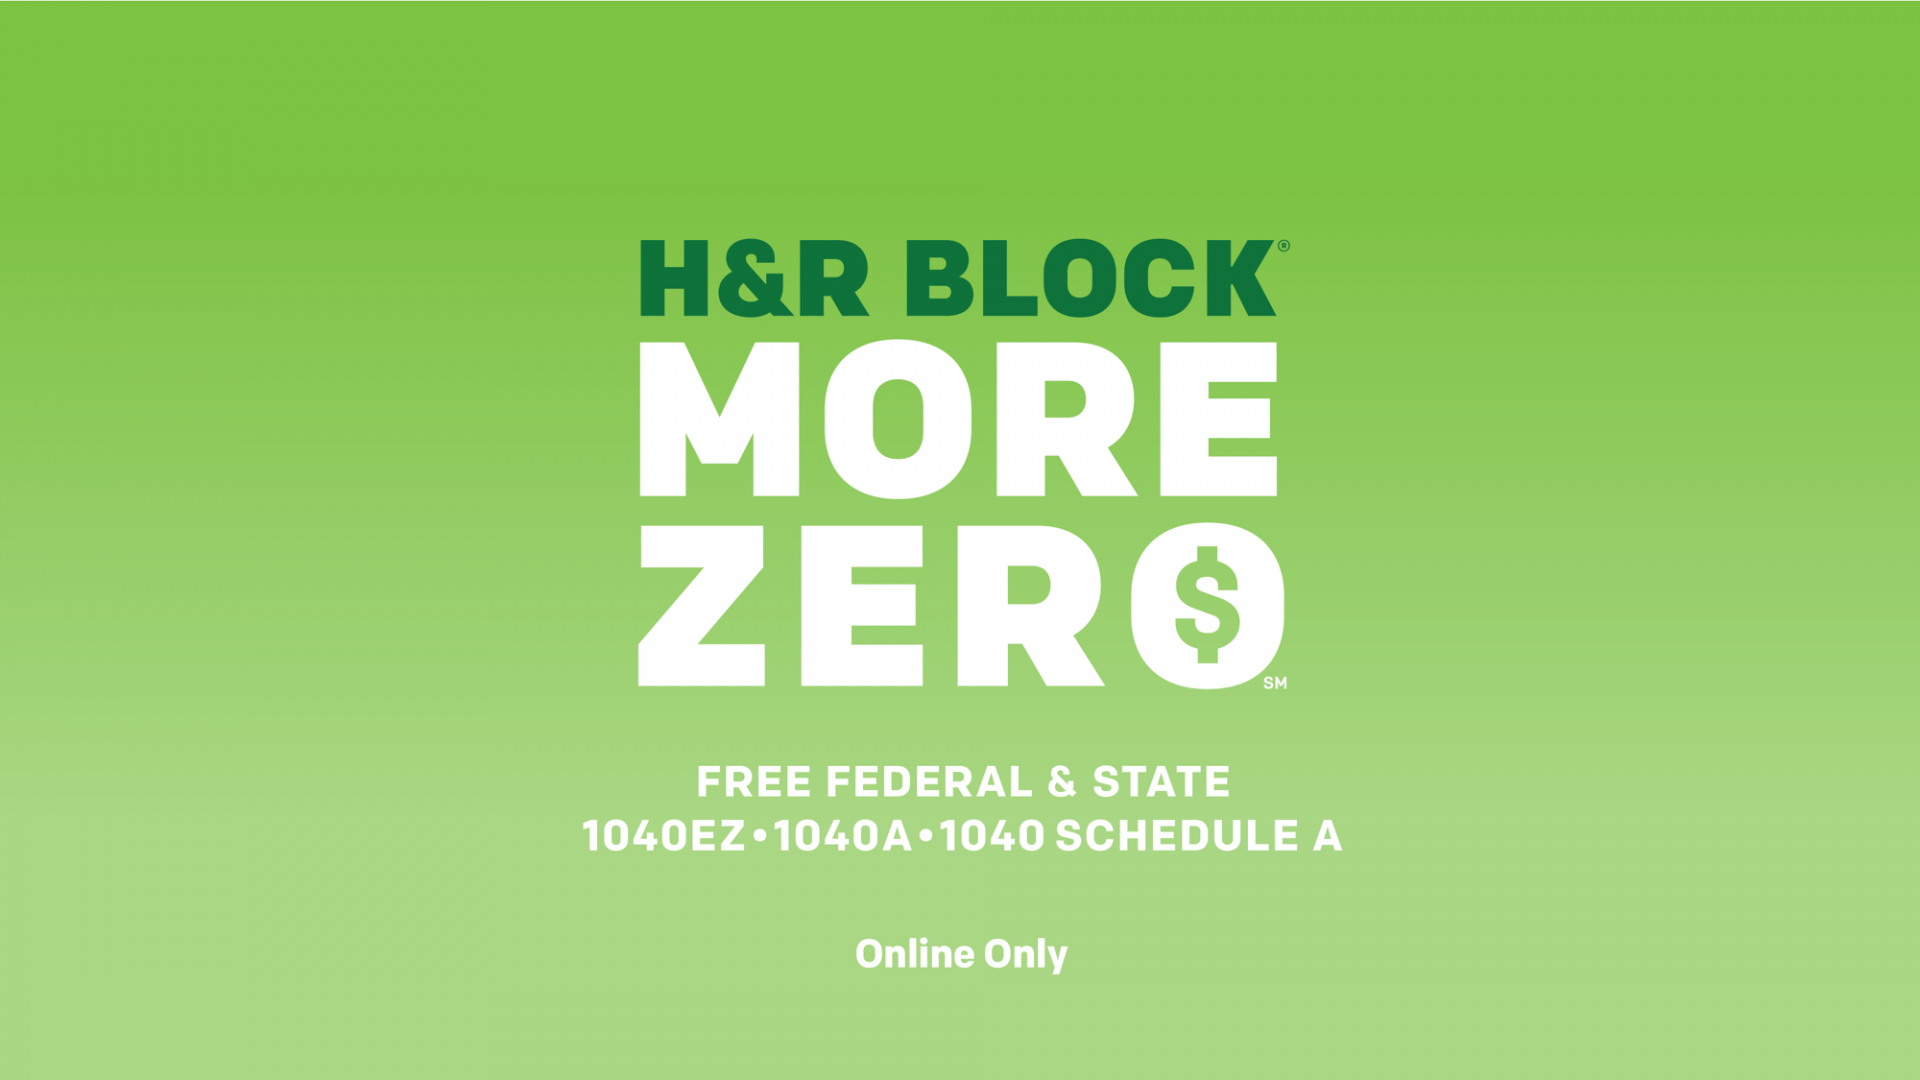 H&R Block will contact you with more details when class schedules are available for your area. Class schedules are generally available begining the first part of July. Enrollment in, or completion of, the H&R Block Income Tax Course is neither an offer nor a guarantee of employment.